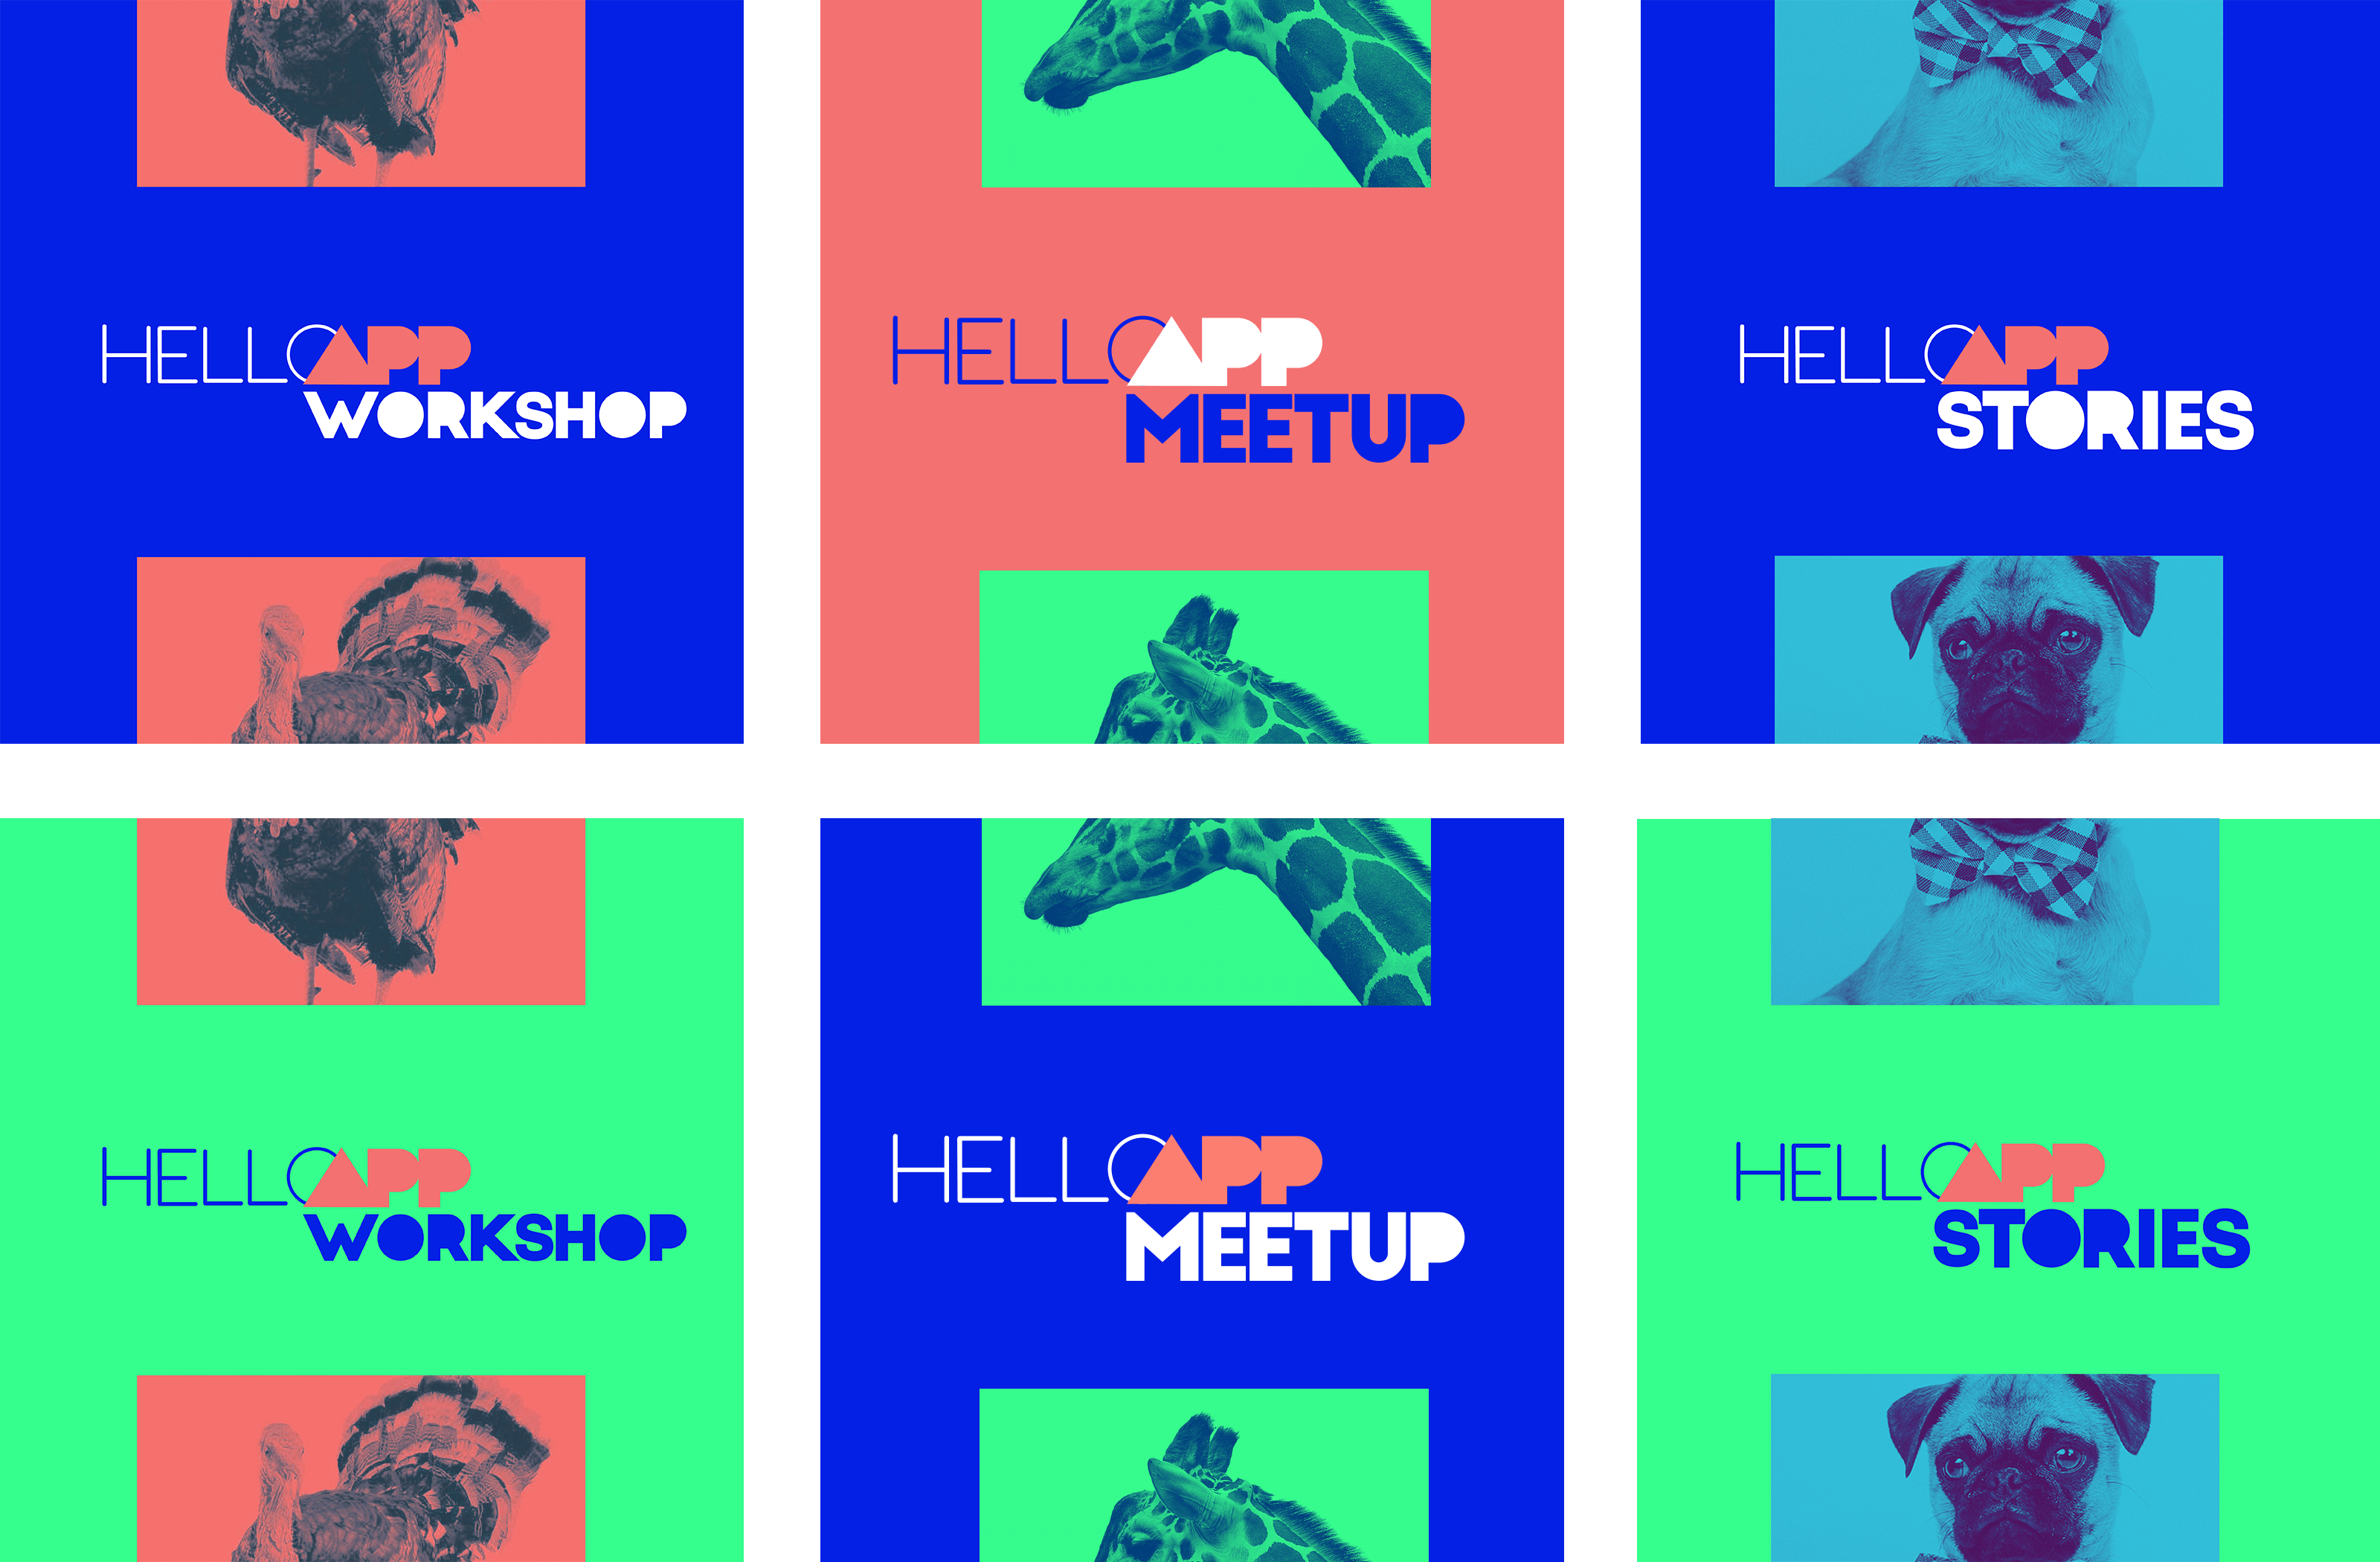 Hello App Event Versions Colours